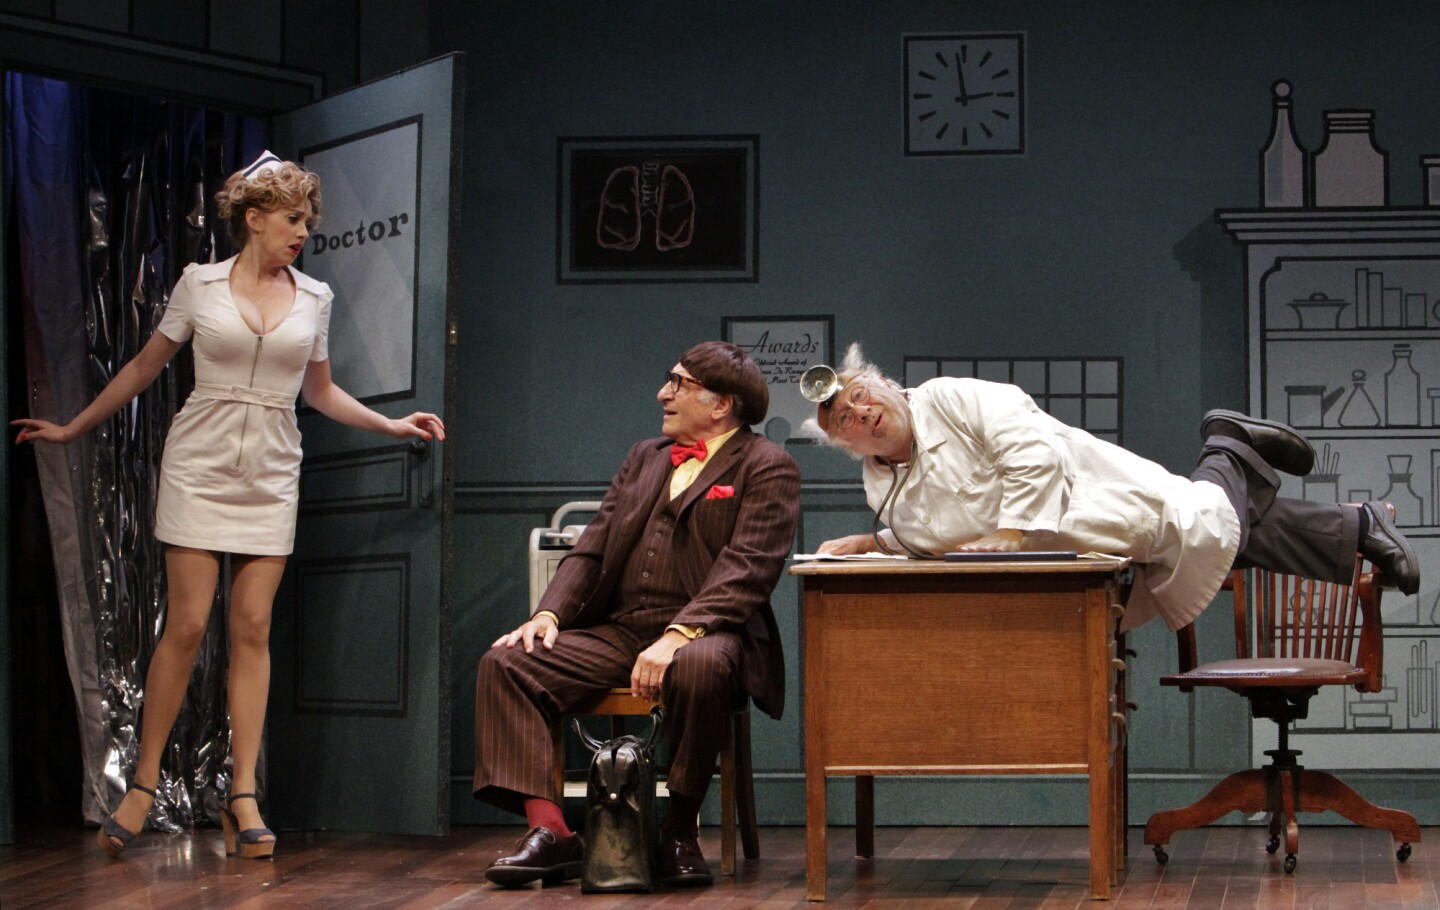 """Annie Abrams, Judd Hirsch, center; and Danny DeVito in a scene from the revival of Neil Simon's """"The Sunshine Boys"""" at the Ahmanson Theatre in Los Angeles."""